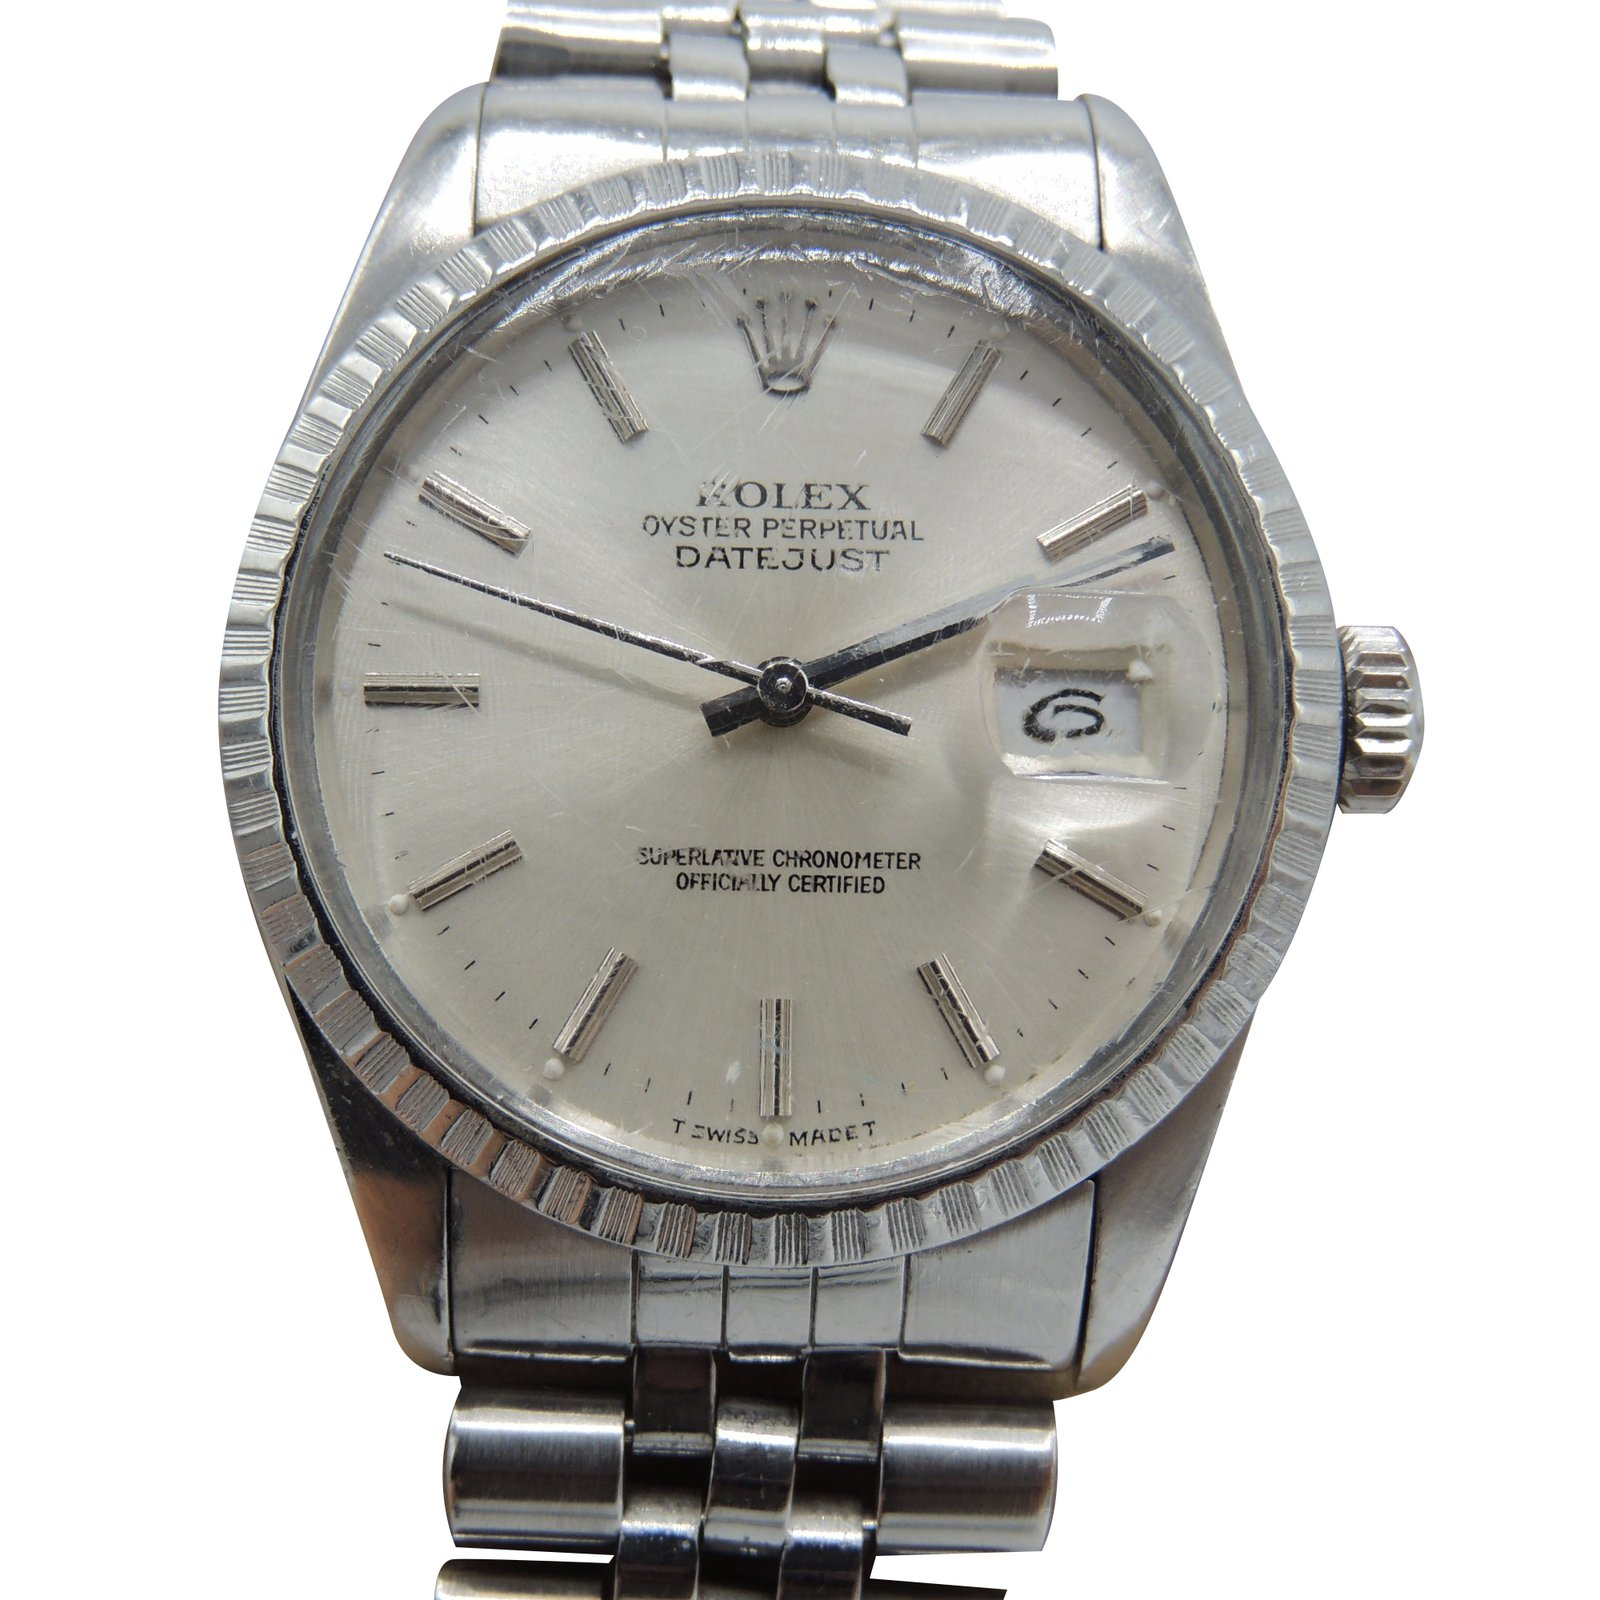 Rolex OYSTER PERPETUAL DATEJUST VINTAGE Automatic watches Steel Silvery  ref.42259 22b3dc863f1f